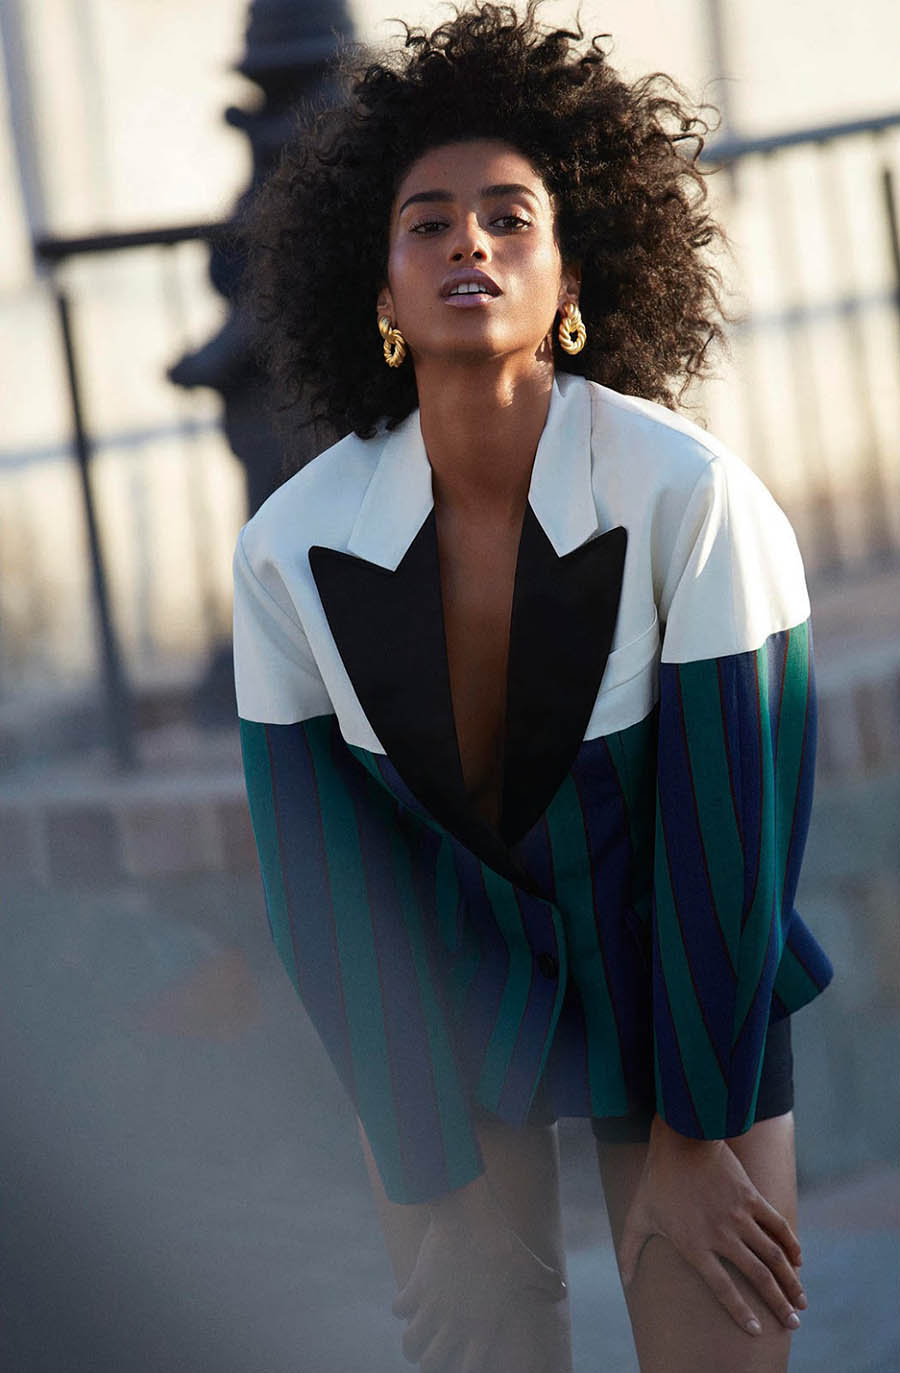 Imaan Hammam covers Porter Magazine Winter Escape 2017 by Camilla Akrans